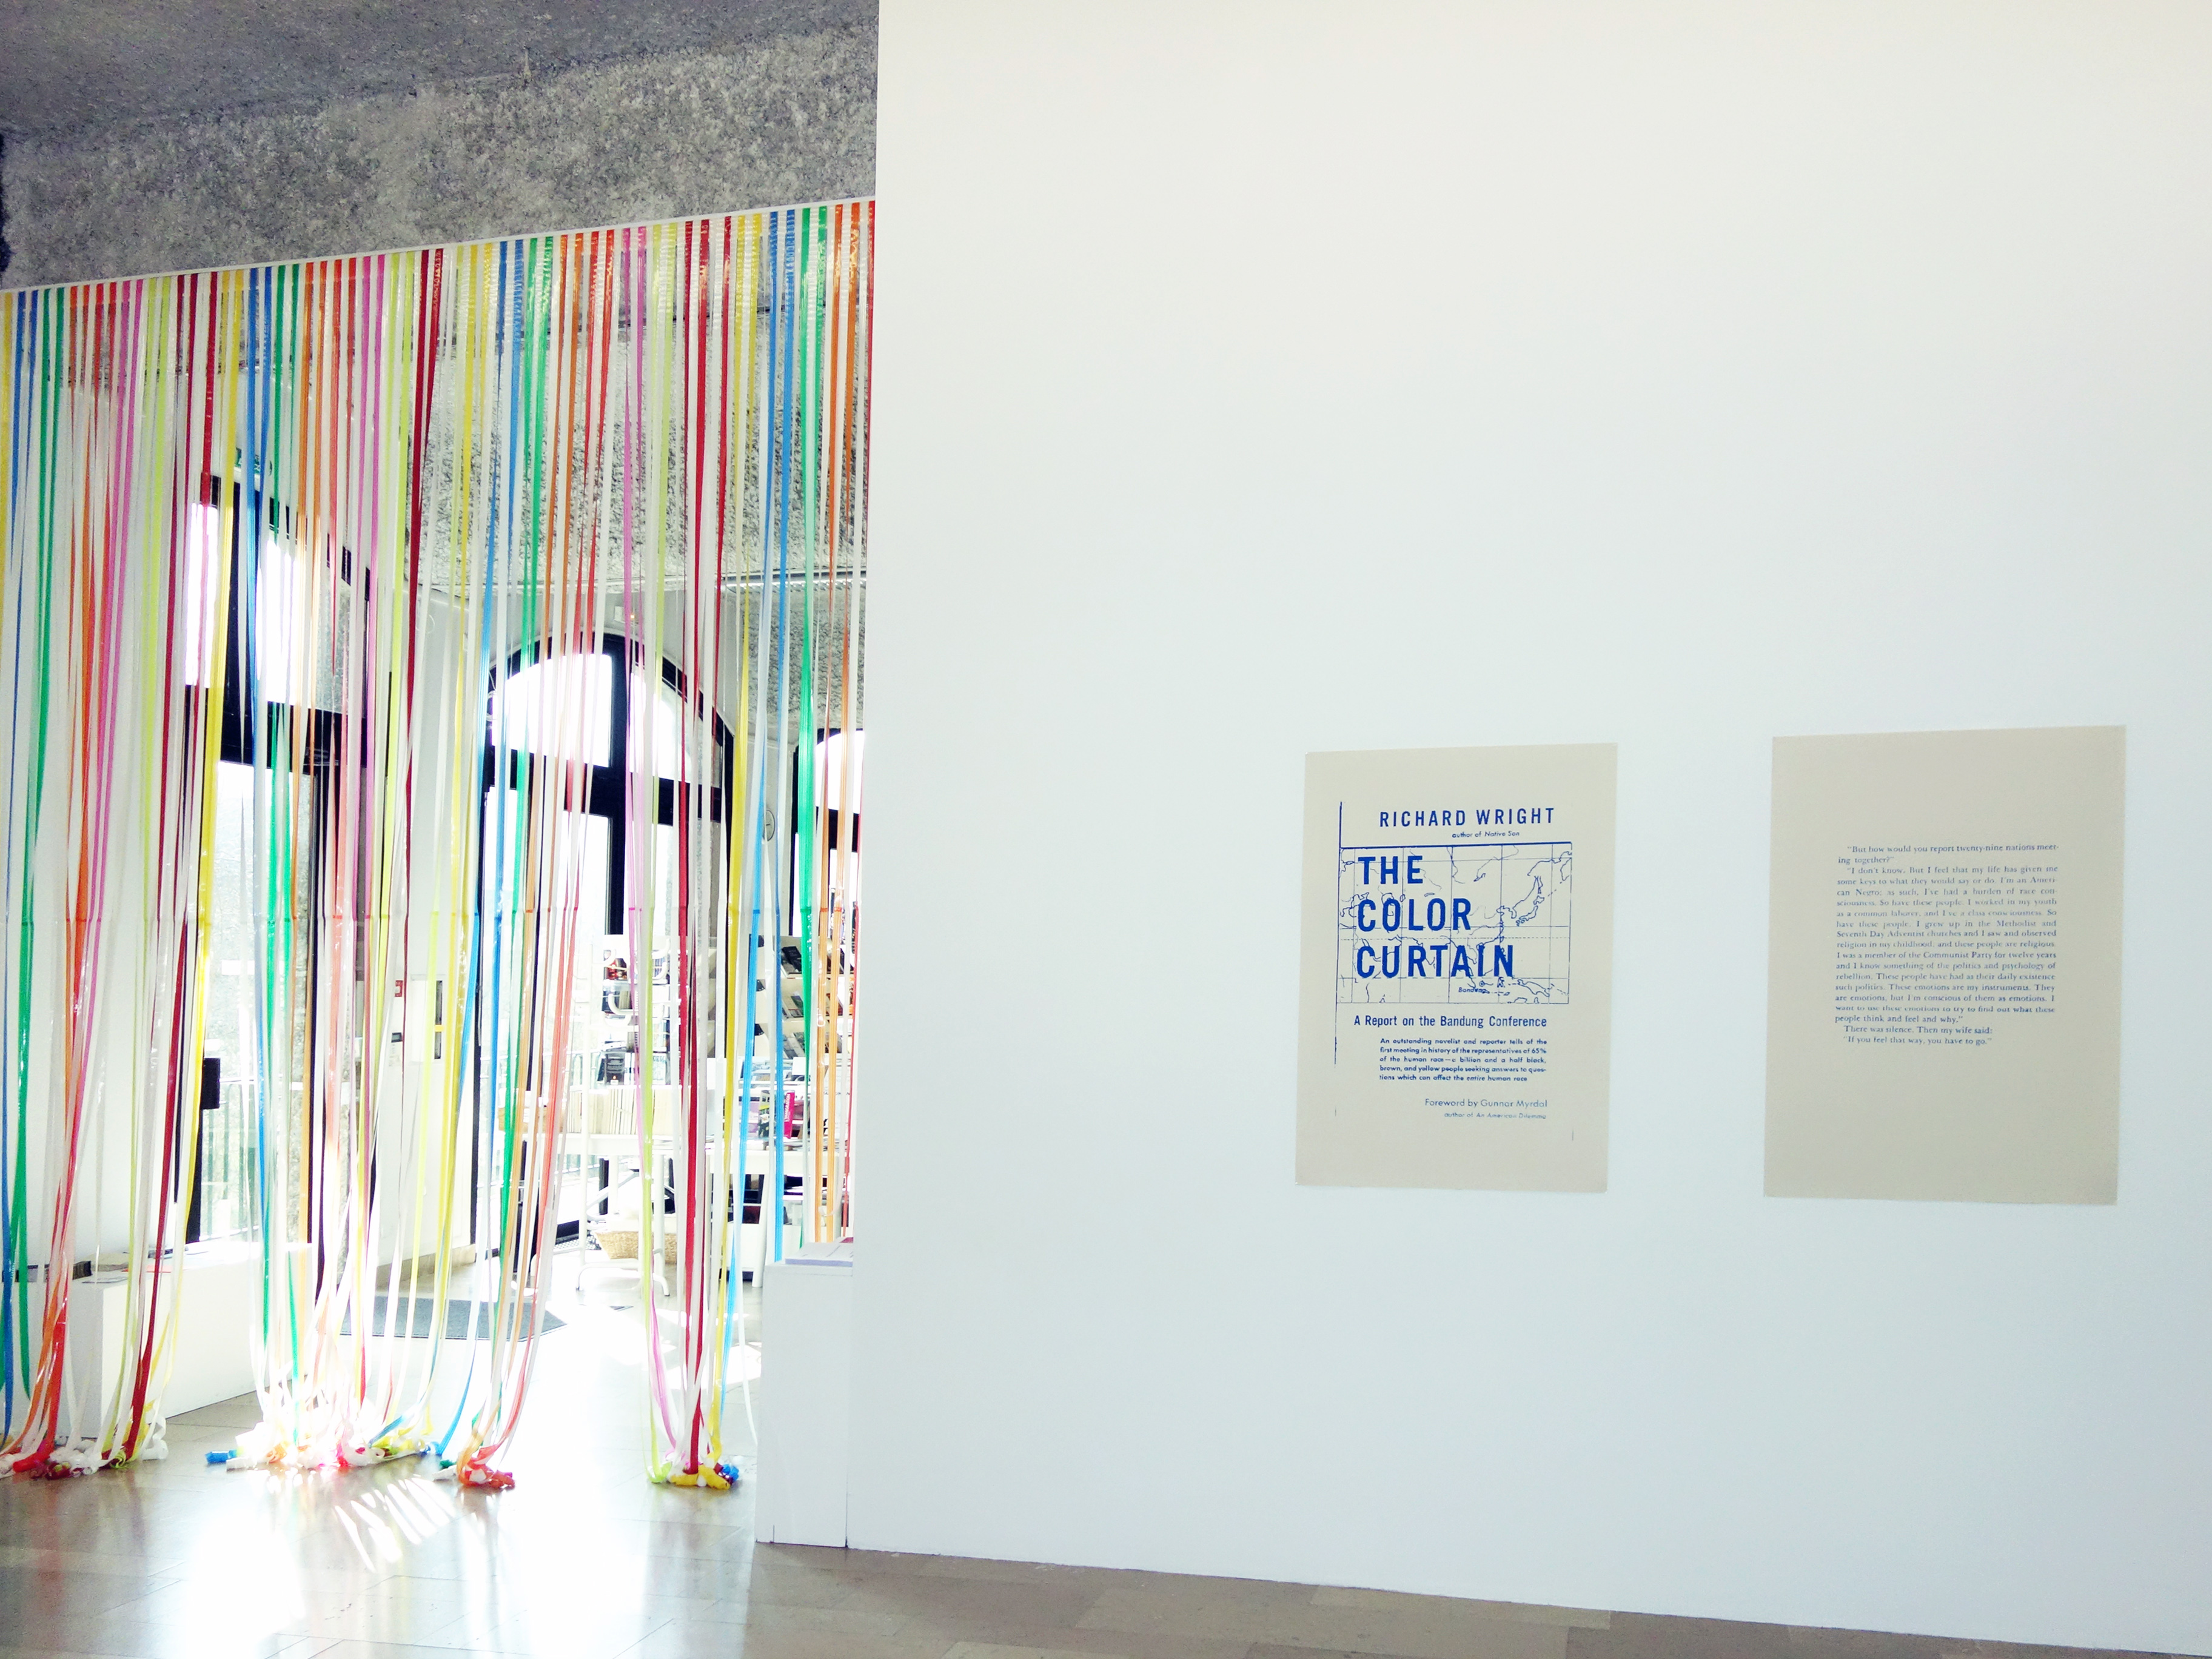 Nathalie Muchamad's view of the exhibition